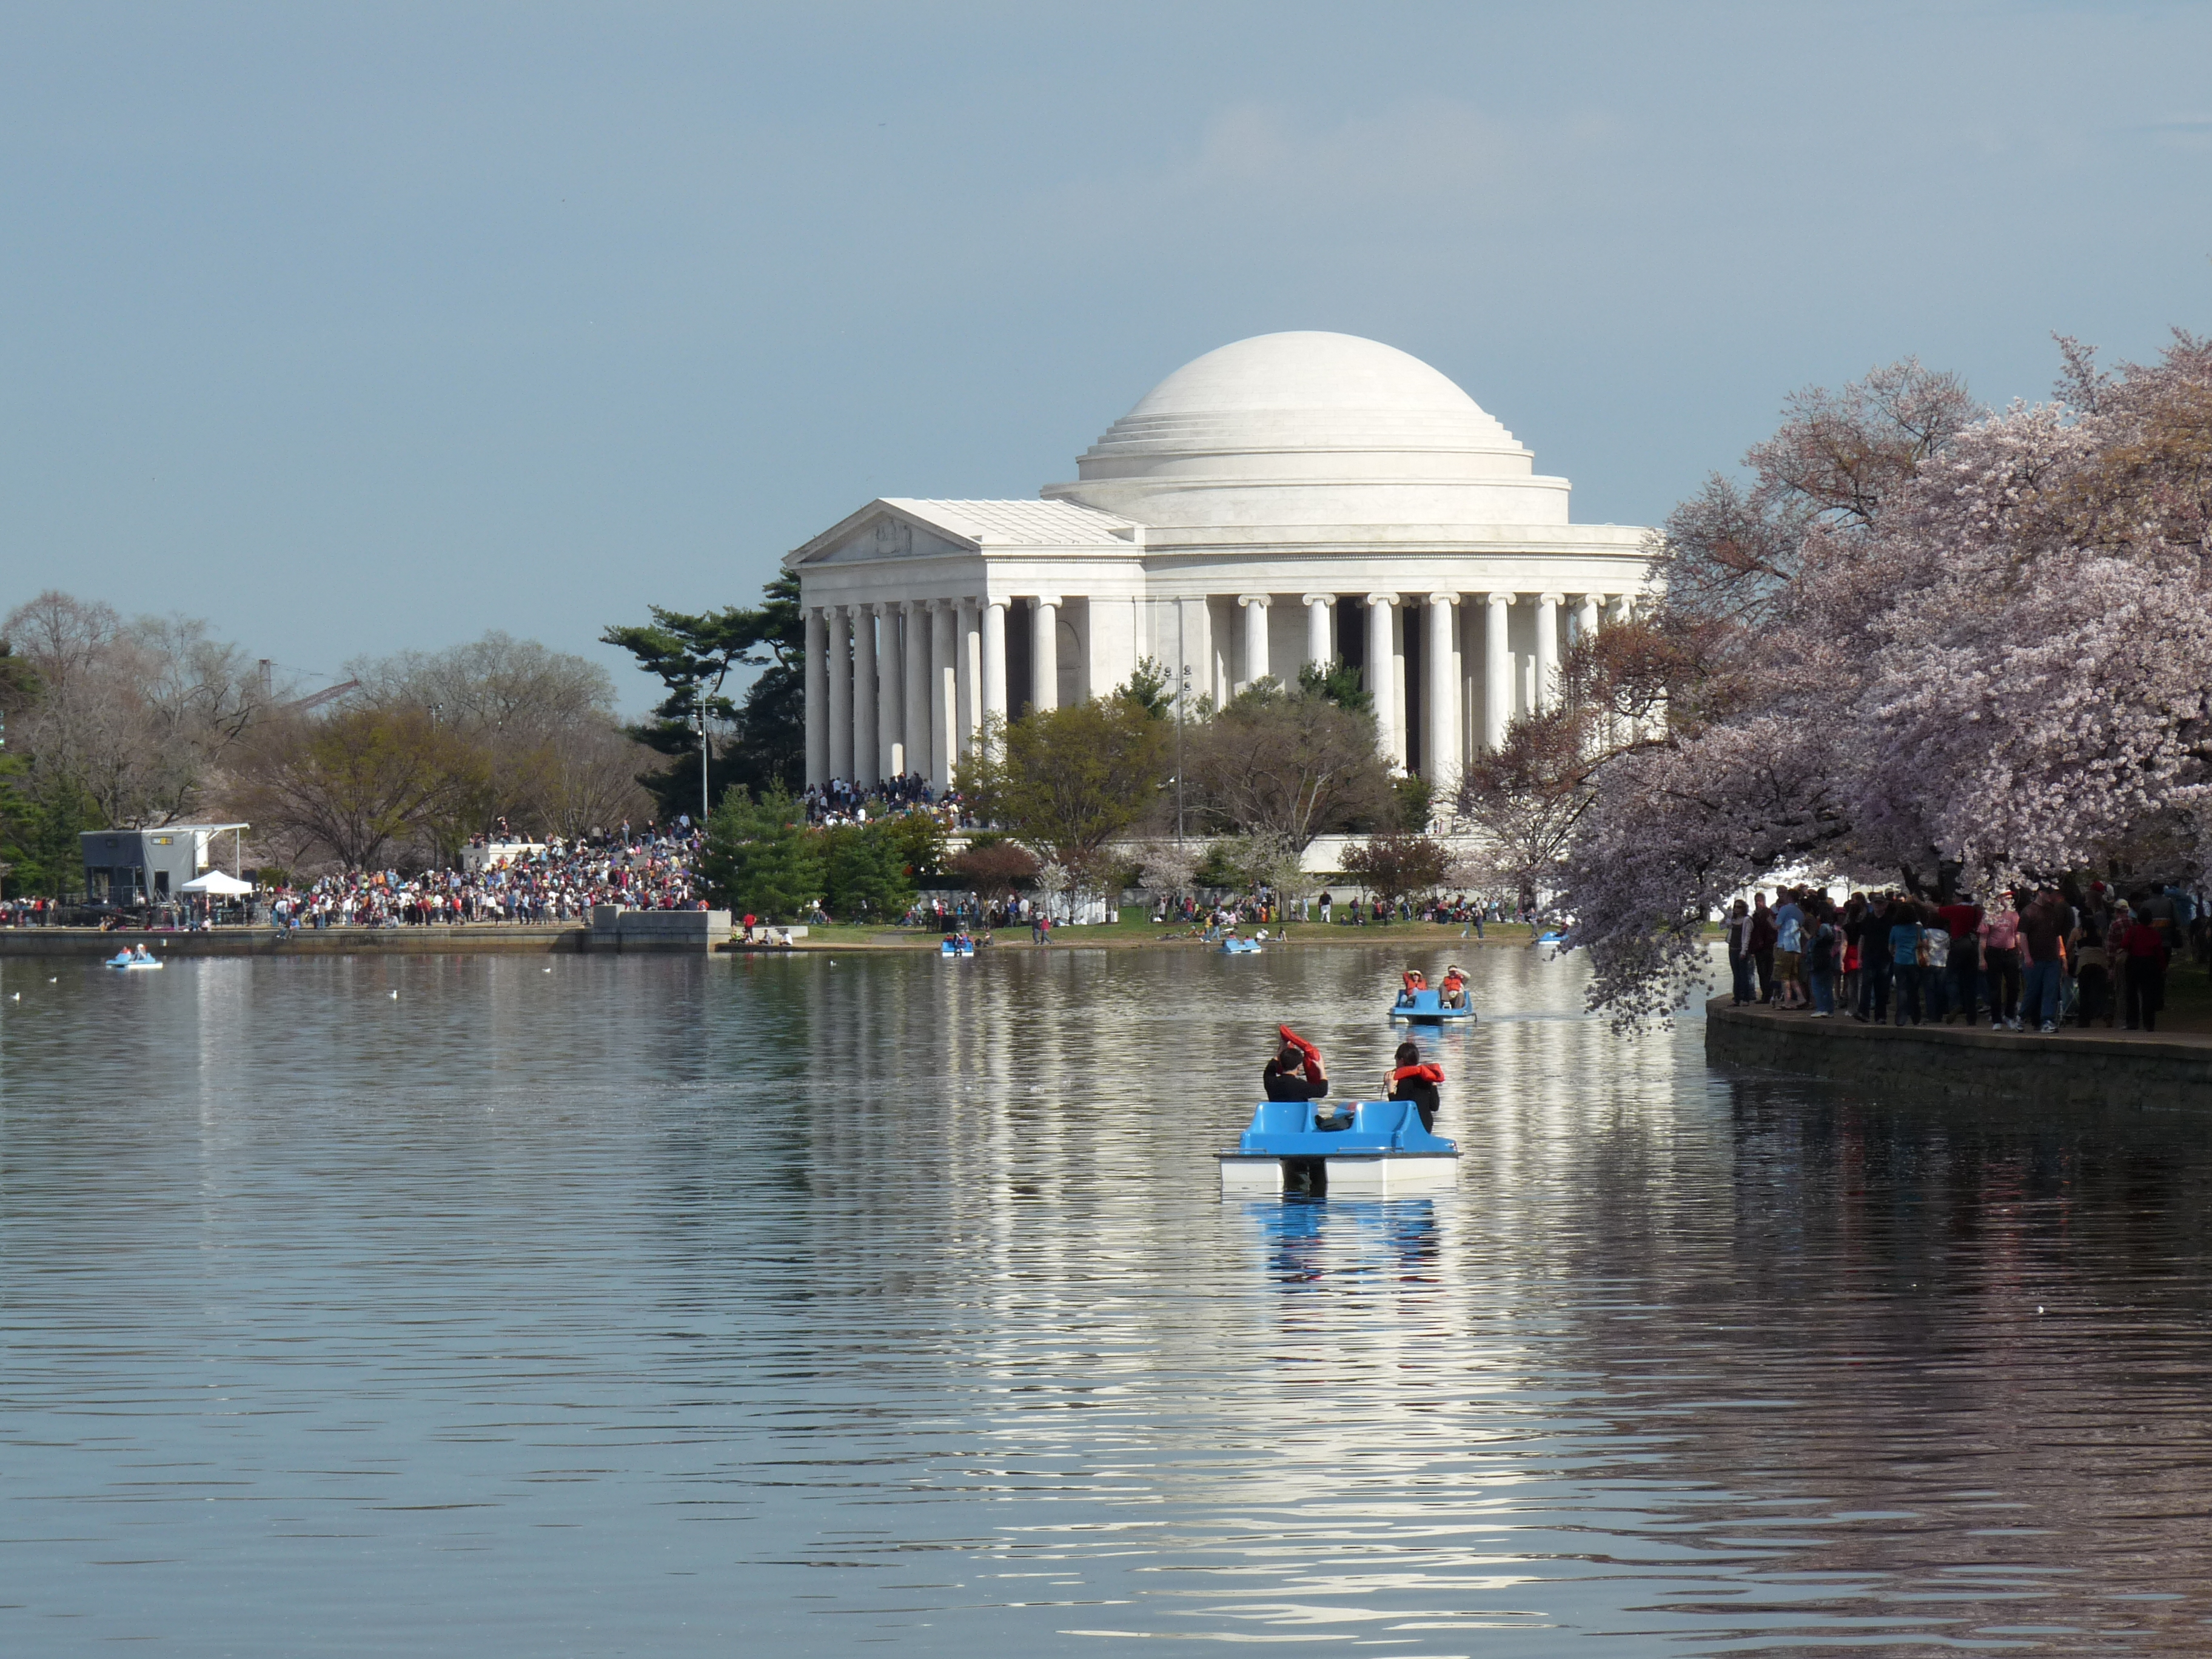 The Jefferson Memorial on the Tidal Basin